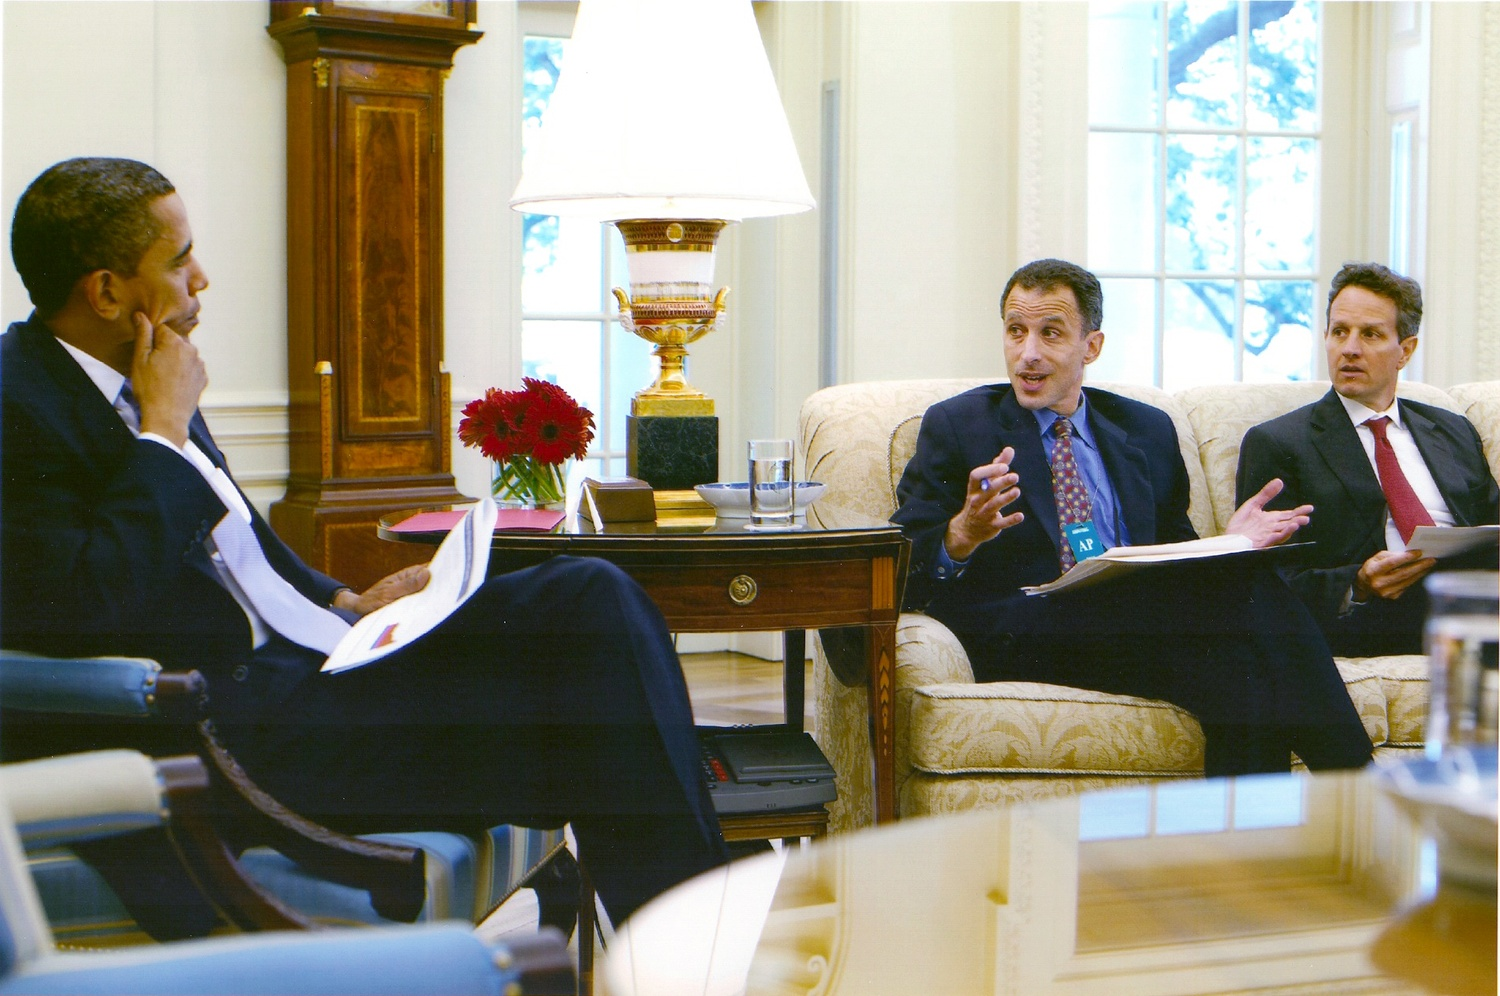 Jeremy C. Stein, pictured here in a previous meeting with President Barack Obama at the White House in 2009, is a current professor in the Economics Department.  Stein was an advisor in the U.S. Treasury Department after the 2008 financial crisis.